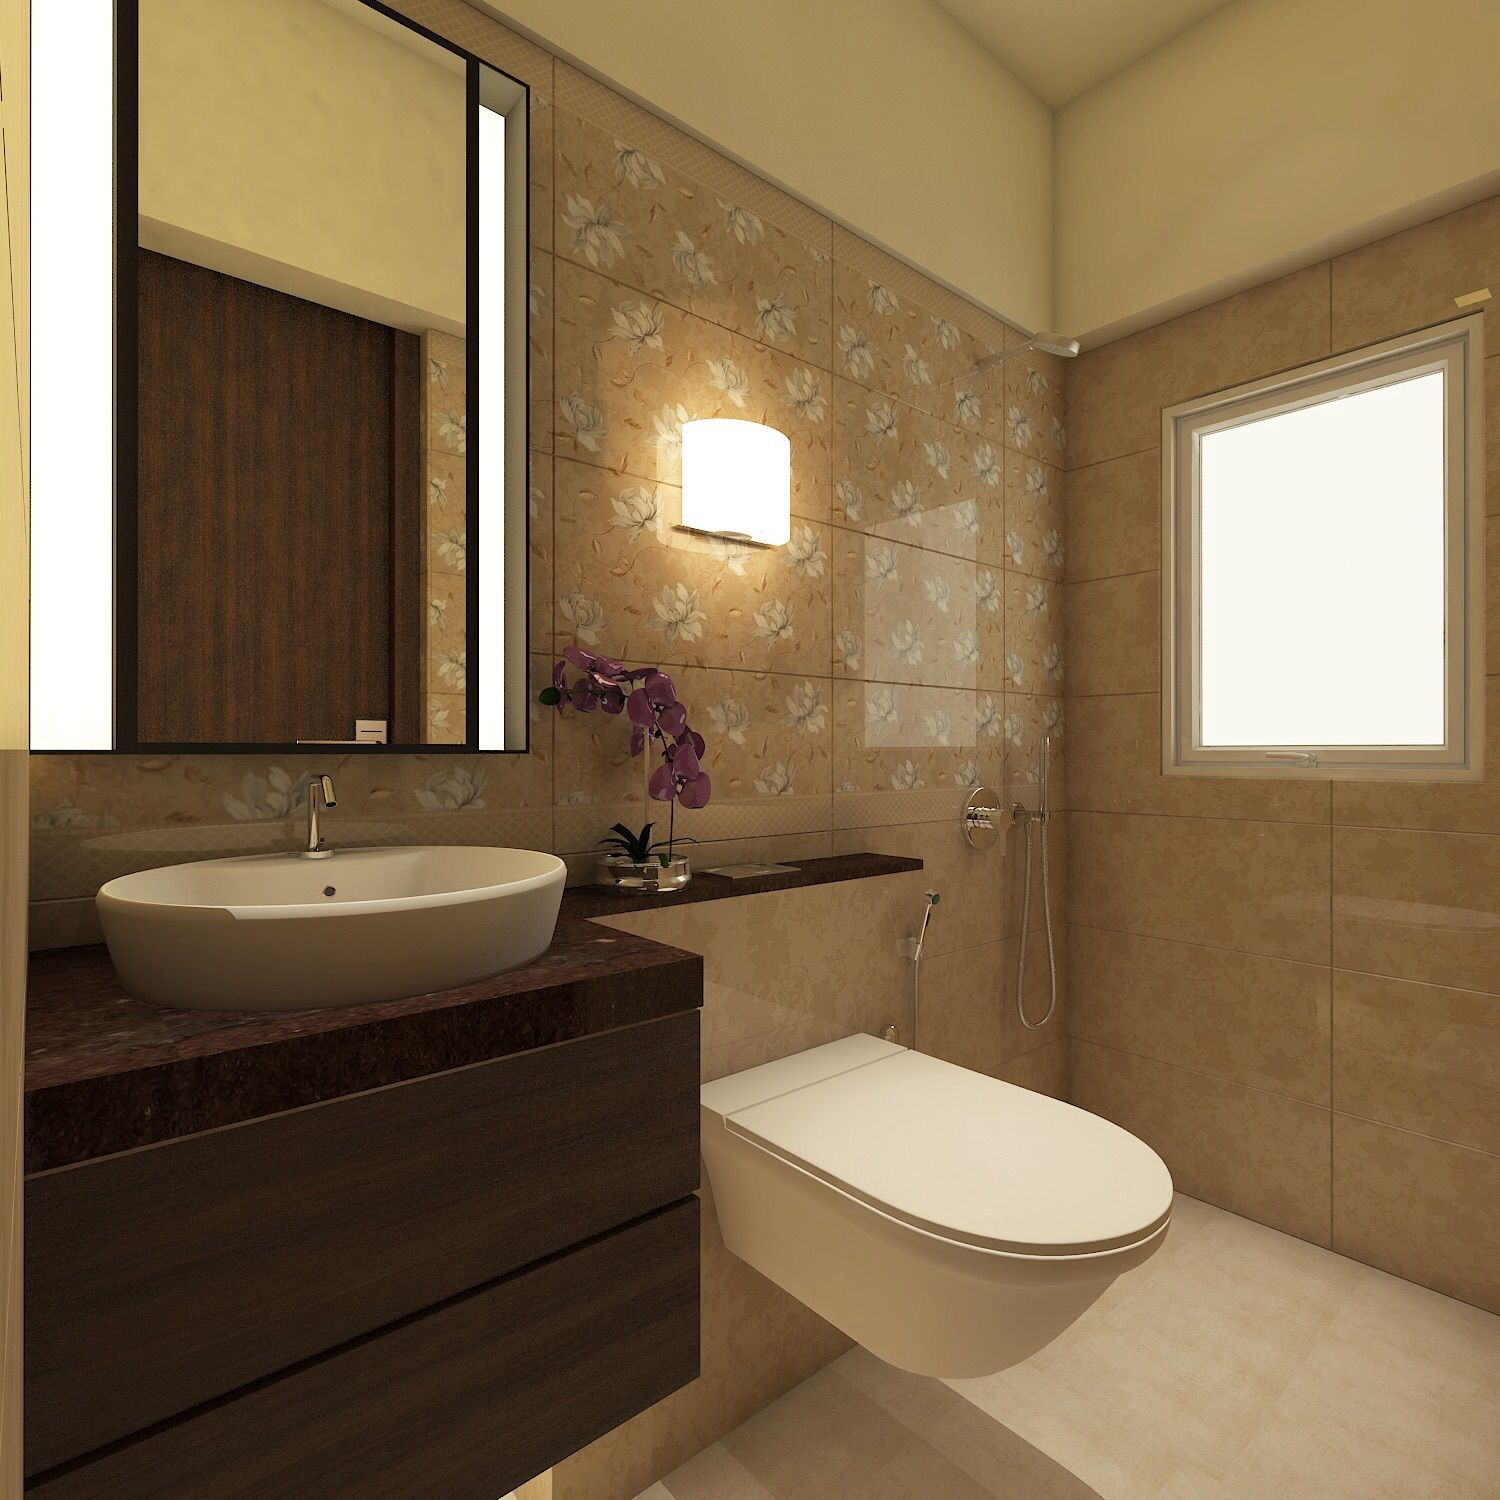 Master Toilet Residence Sample Flat For Zara Habitats LLP Mumbai IN By SAIMA